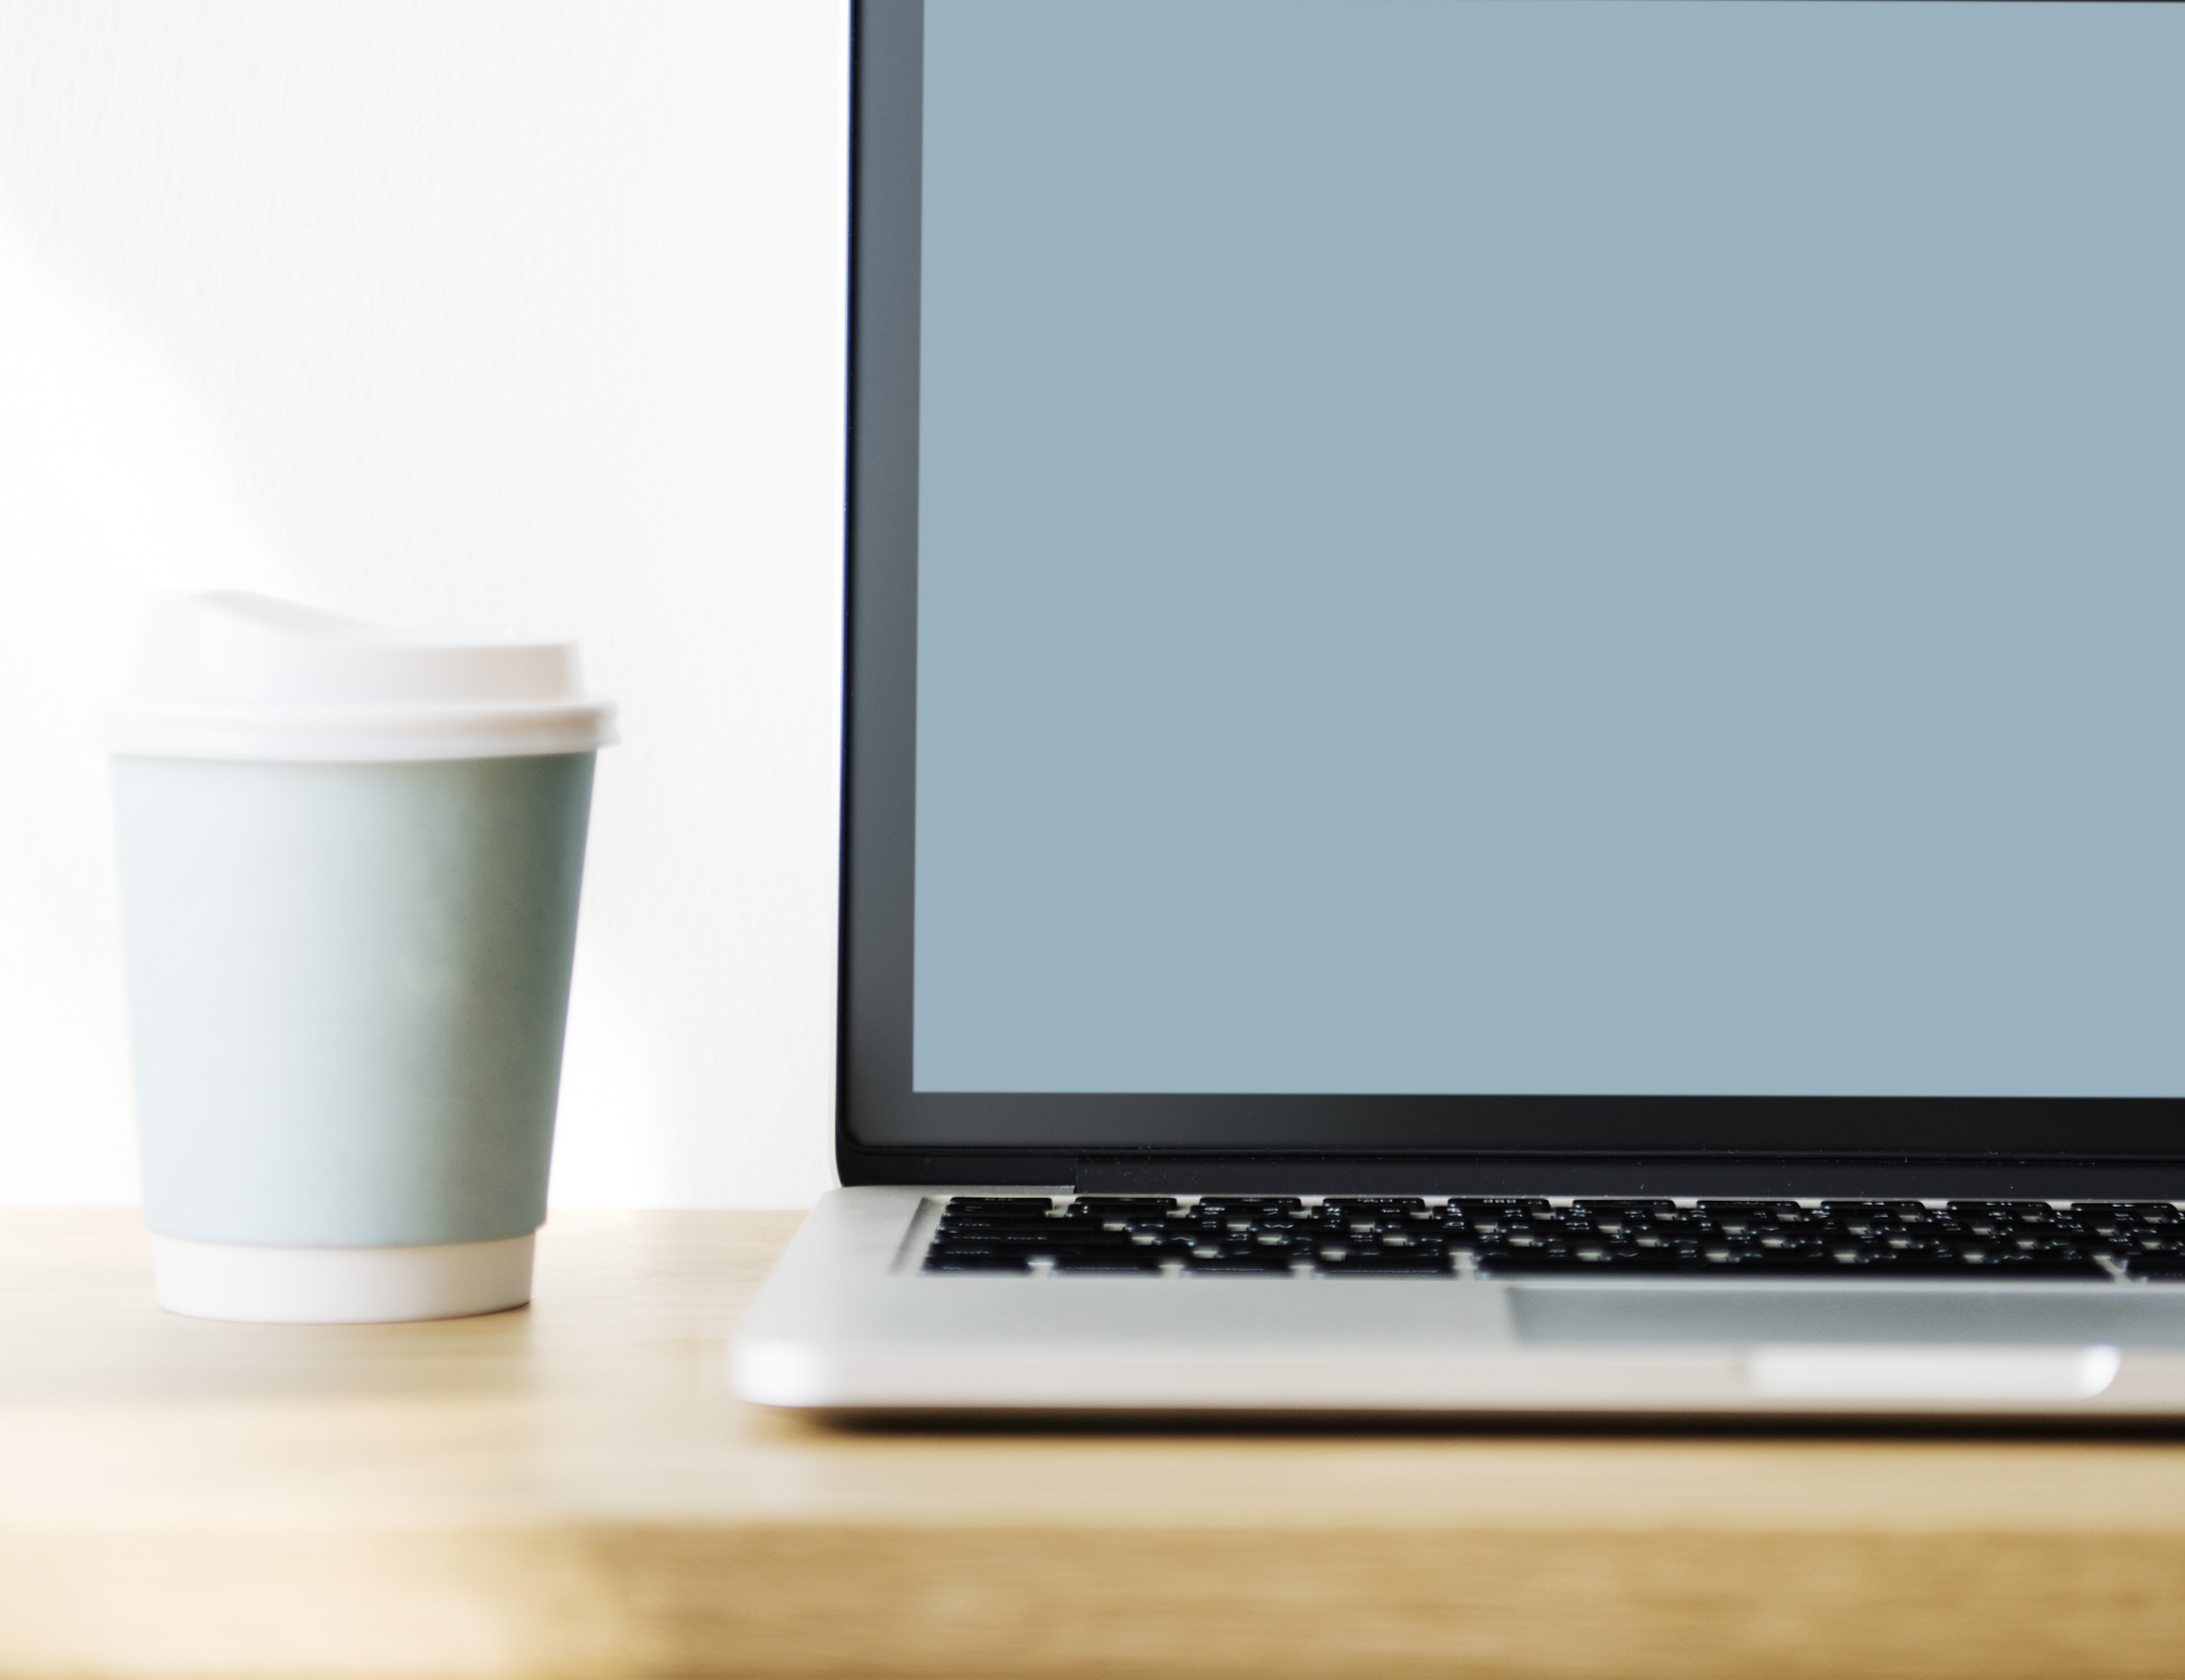 silver laptop near white plastic cup